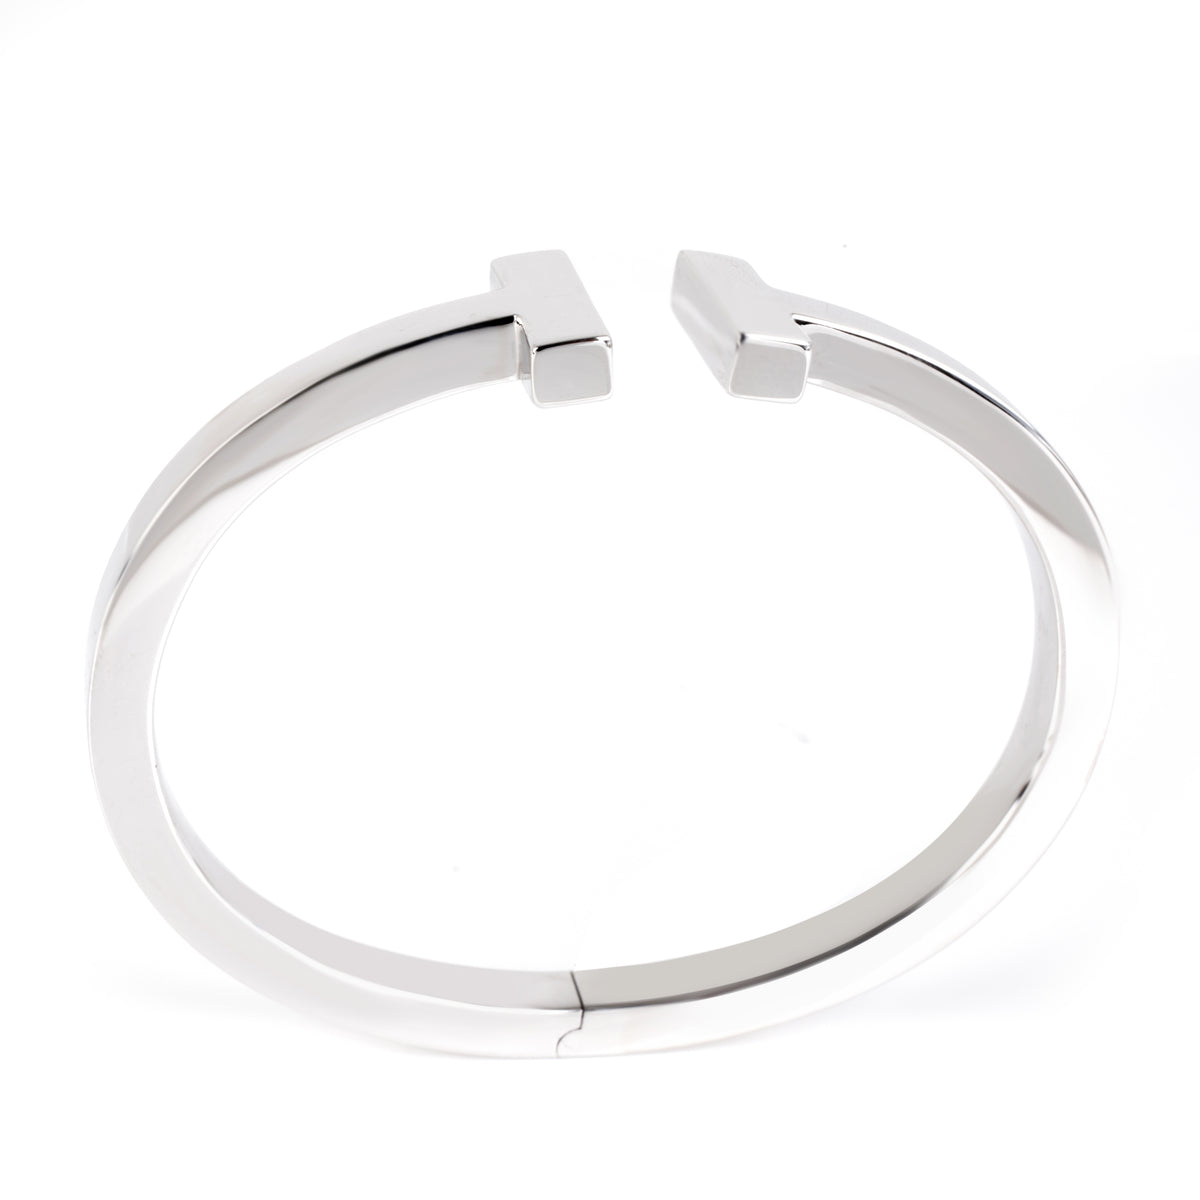 Tiffany & Co. Tiffany T Bangle in 18K White Gold